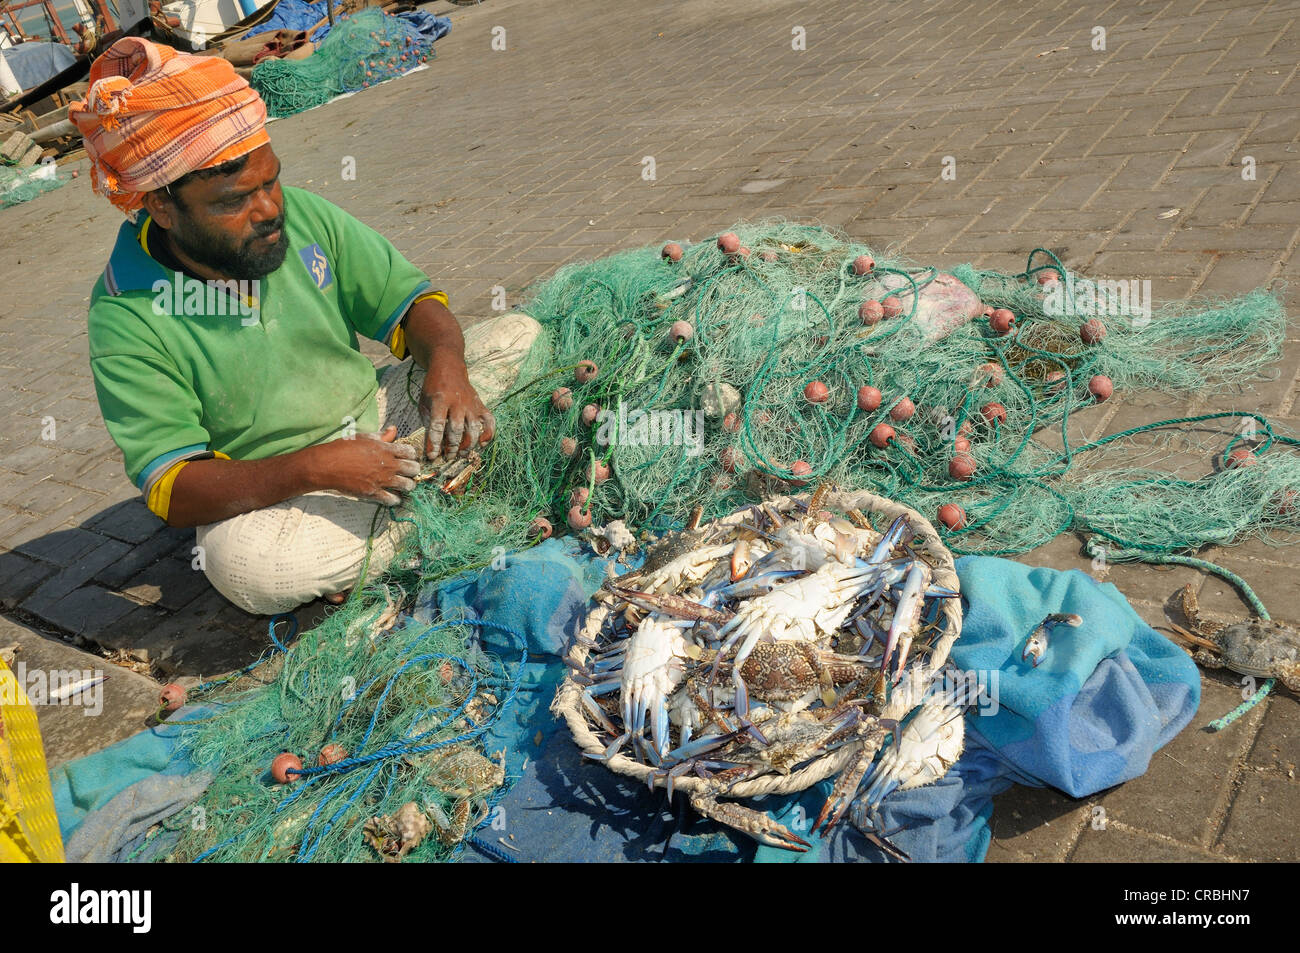 Foreign worker with crabs, Qatar - Stock Image